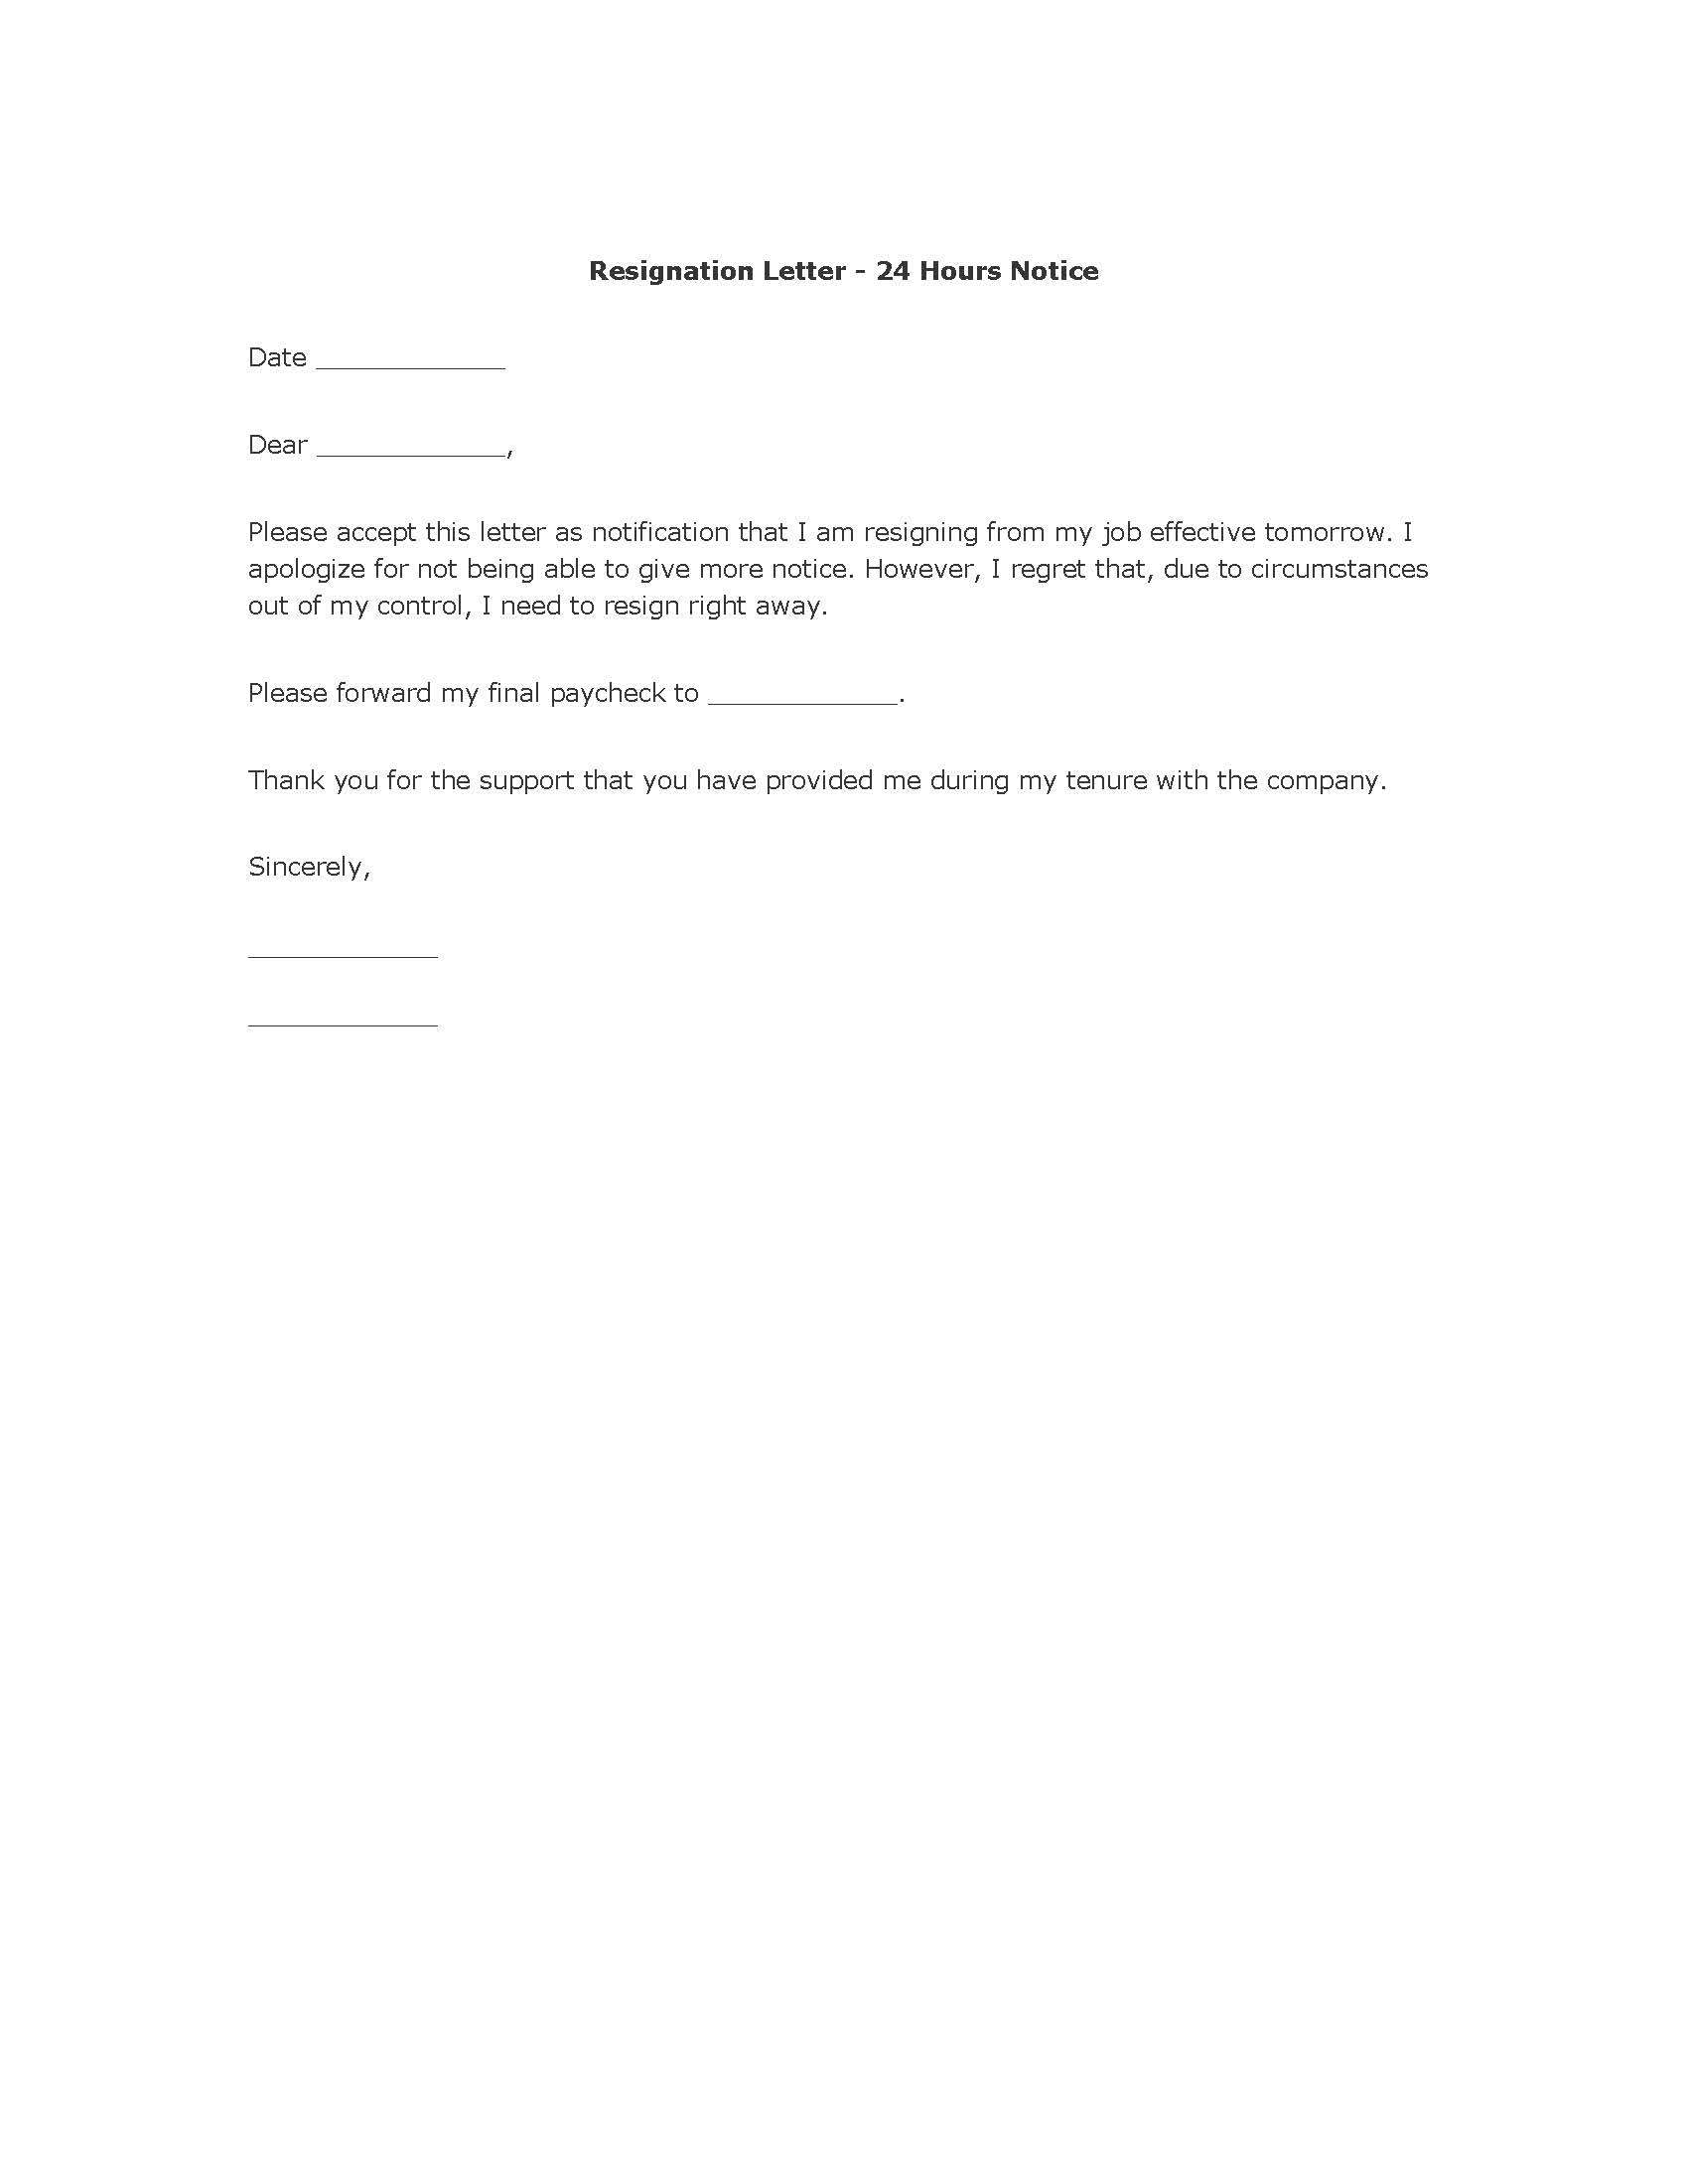 Free Resignation Letter Template 24 hour notice